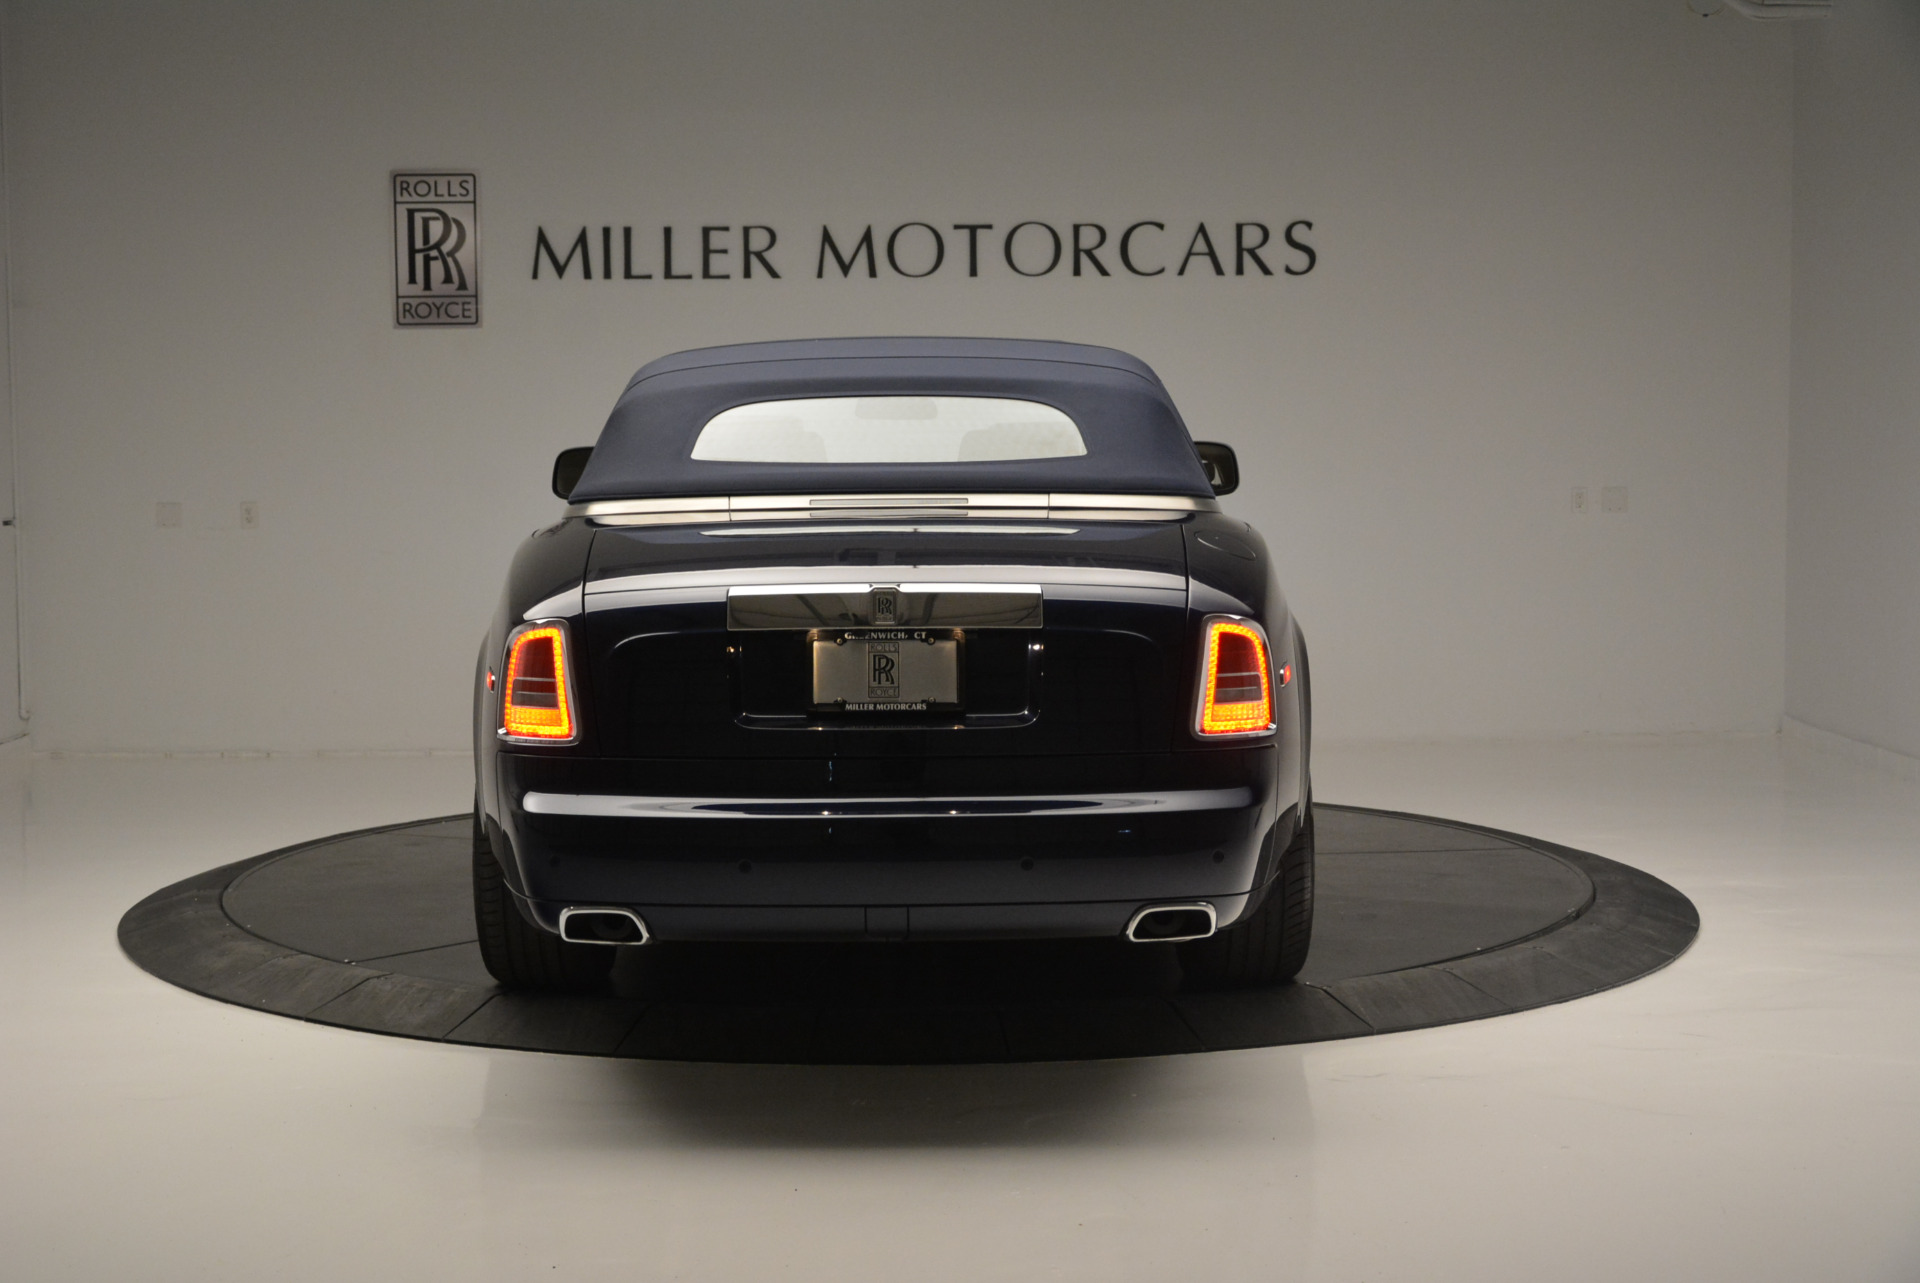 Used 2014 Rolls-Royce Phantom Drophead Coupe  For Sale In Westport, CT 2356_p12